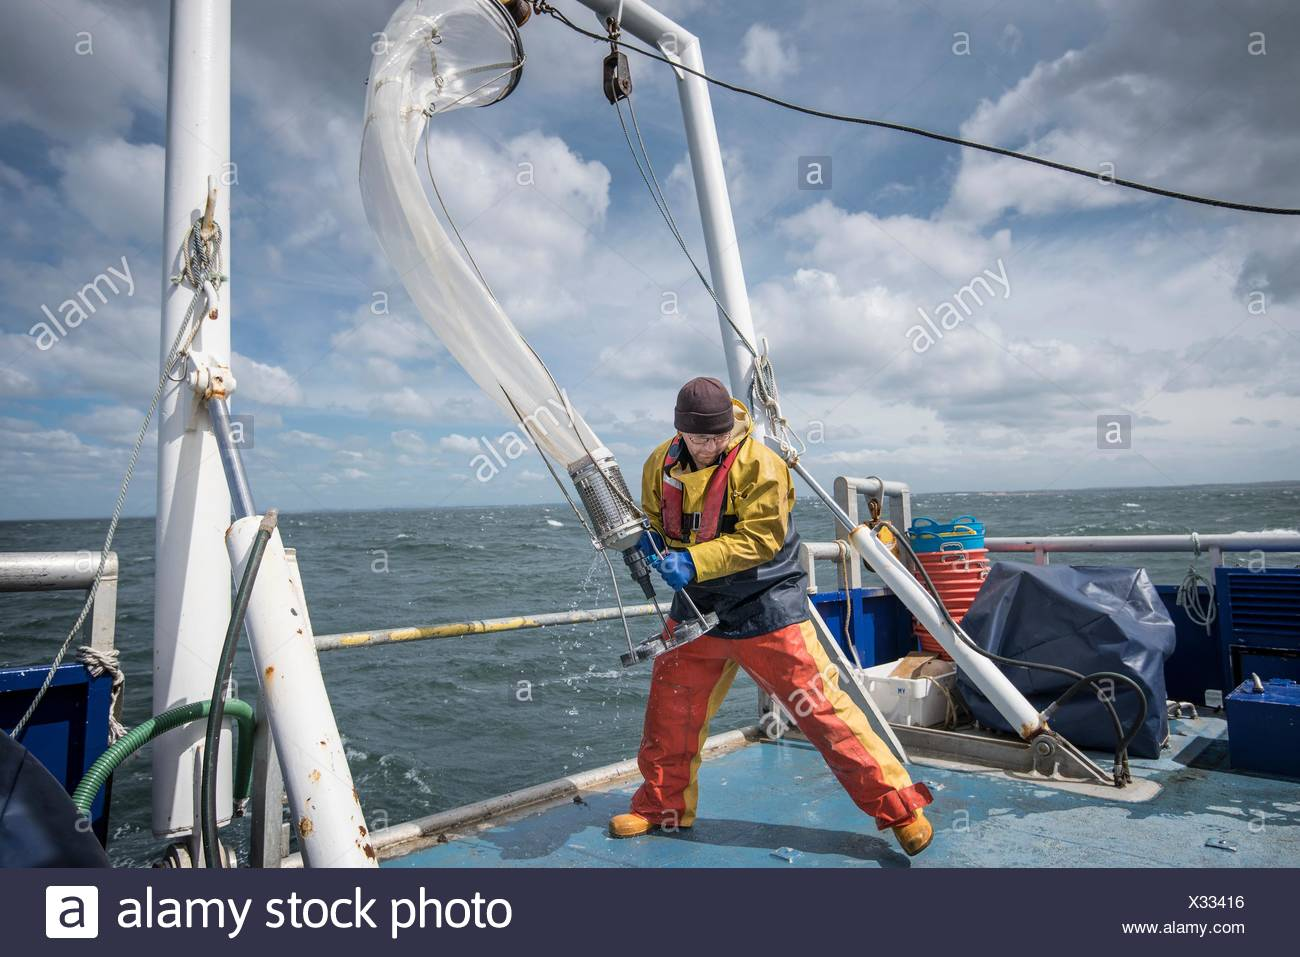 Scientist bringing plankton net on board of research ship - Stock Image